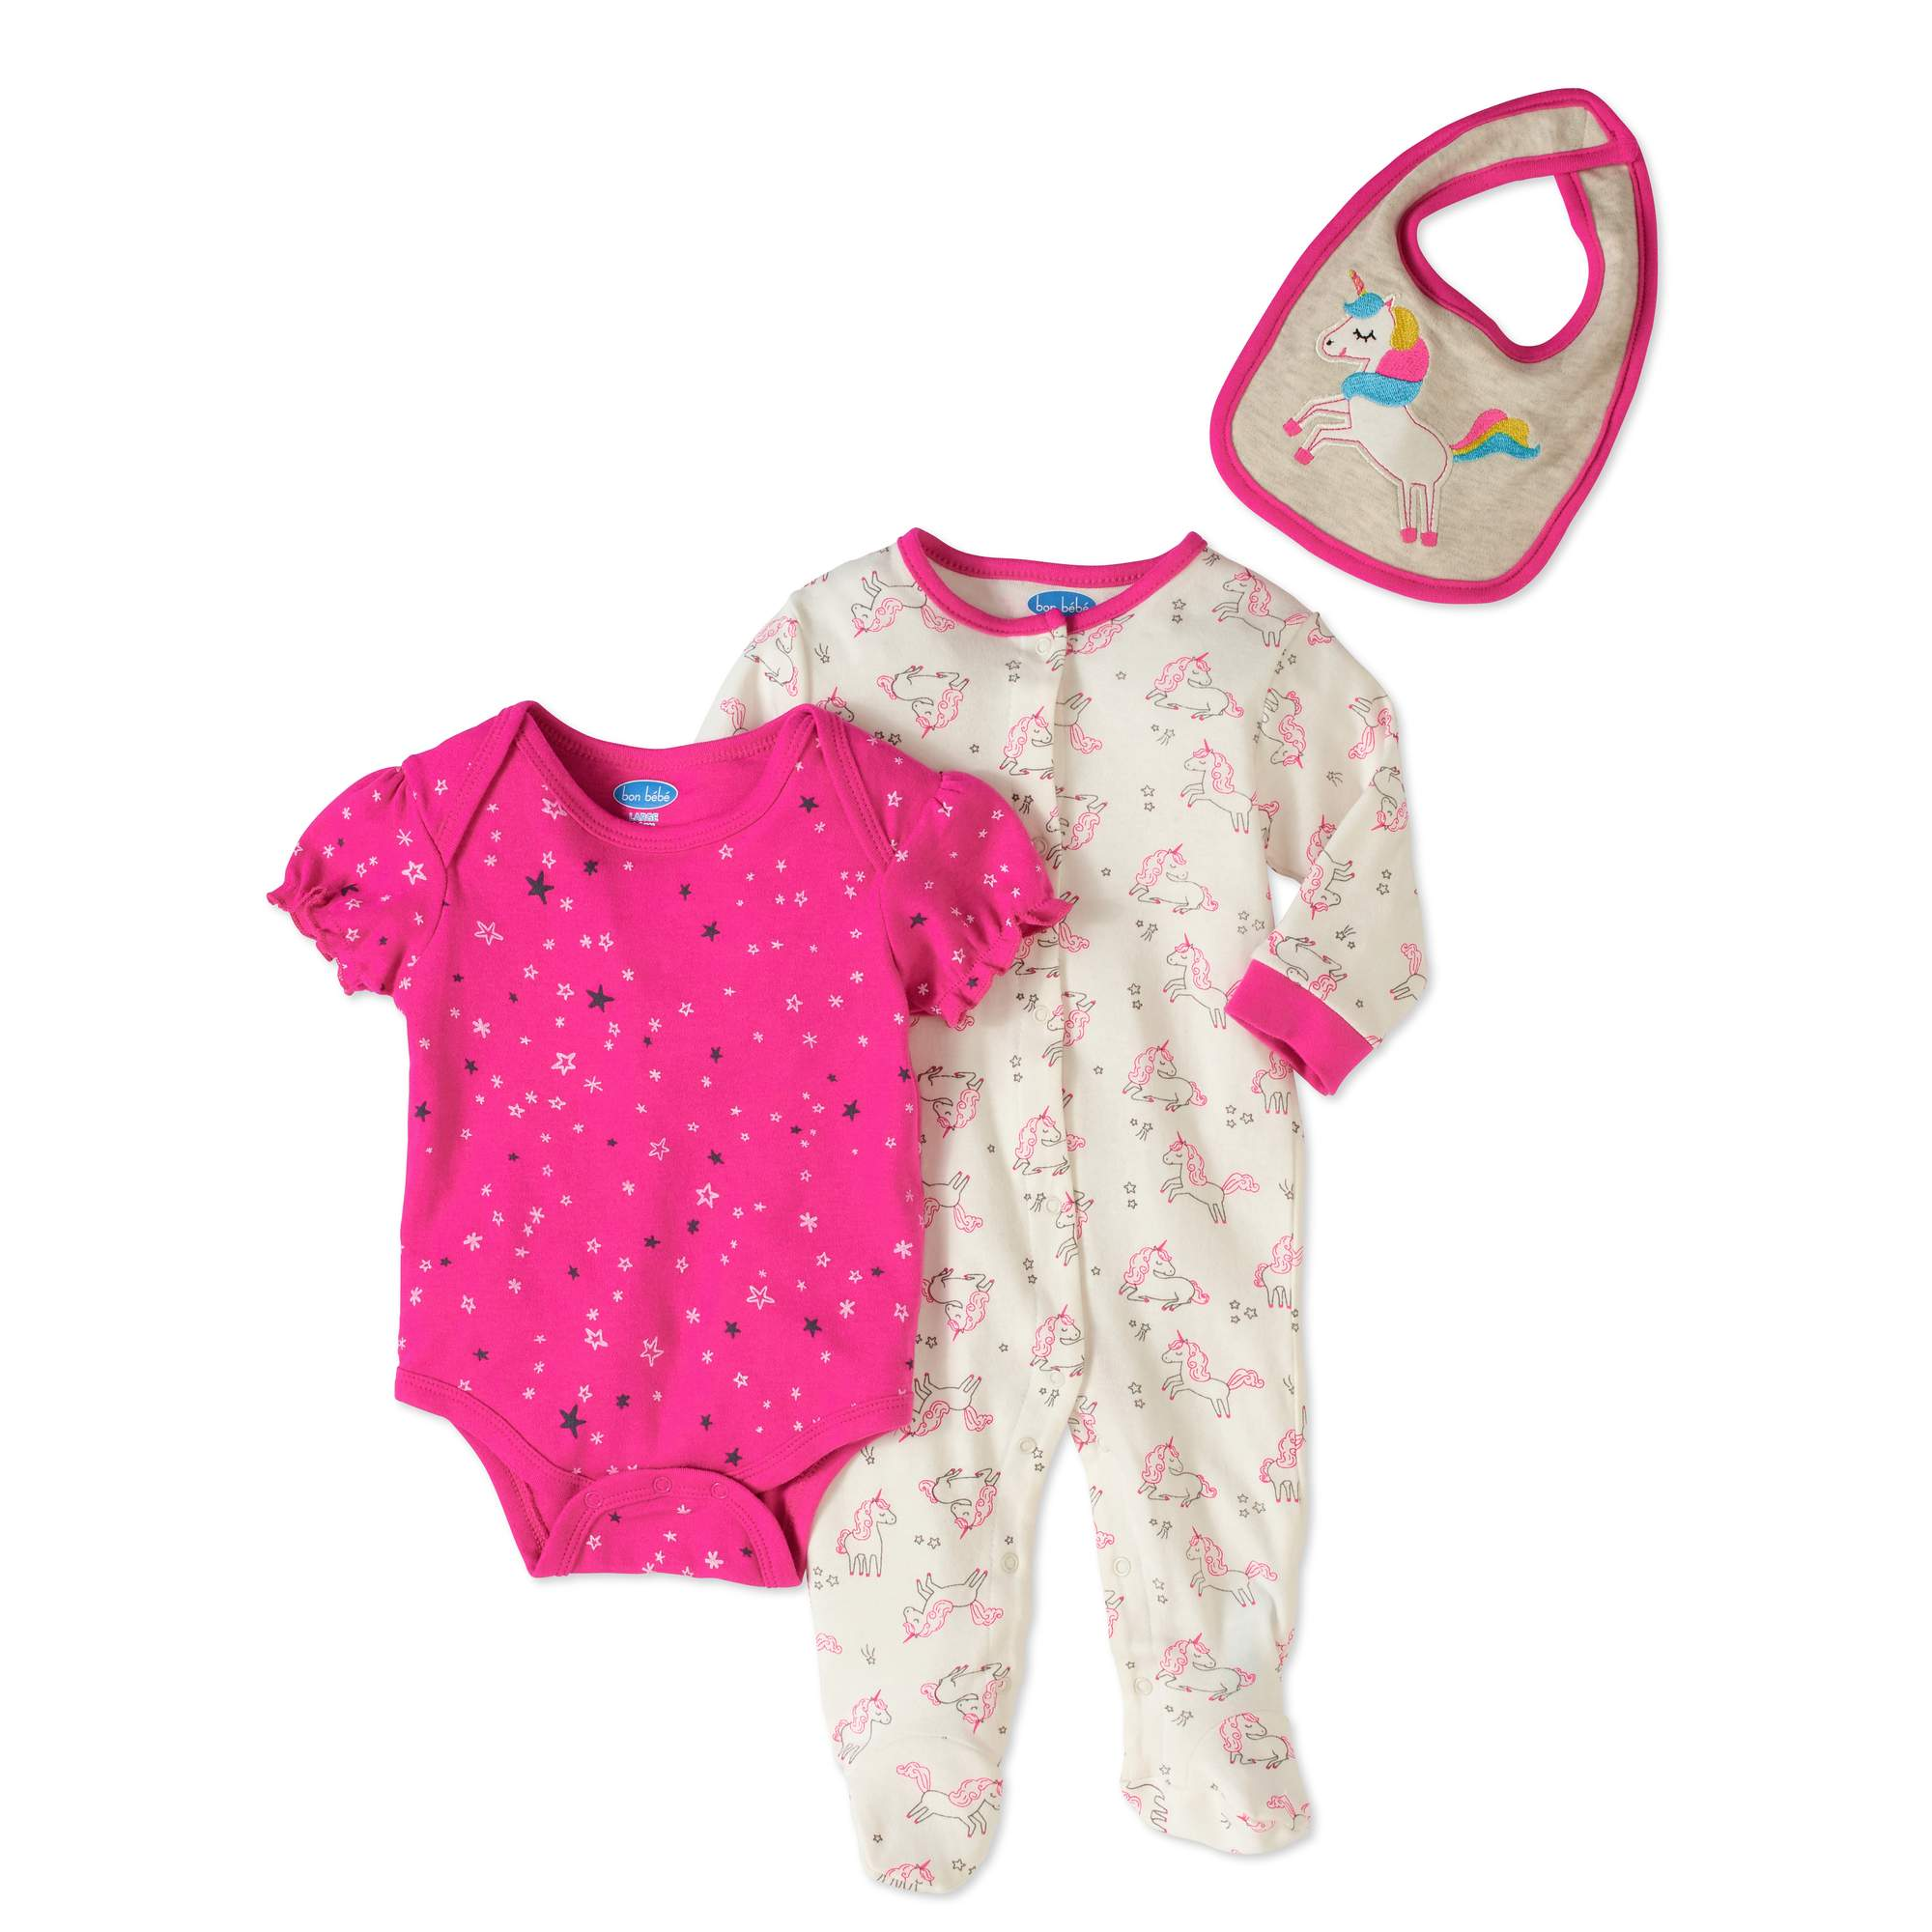 Newborn Baby Girl Take-Me-Home, 3pc Set